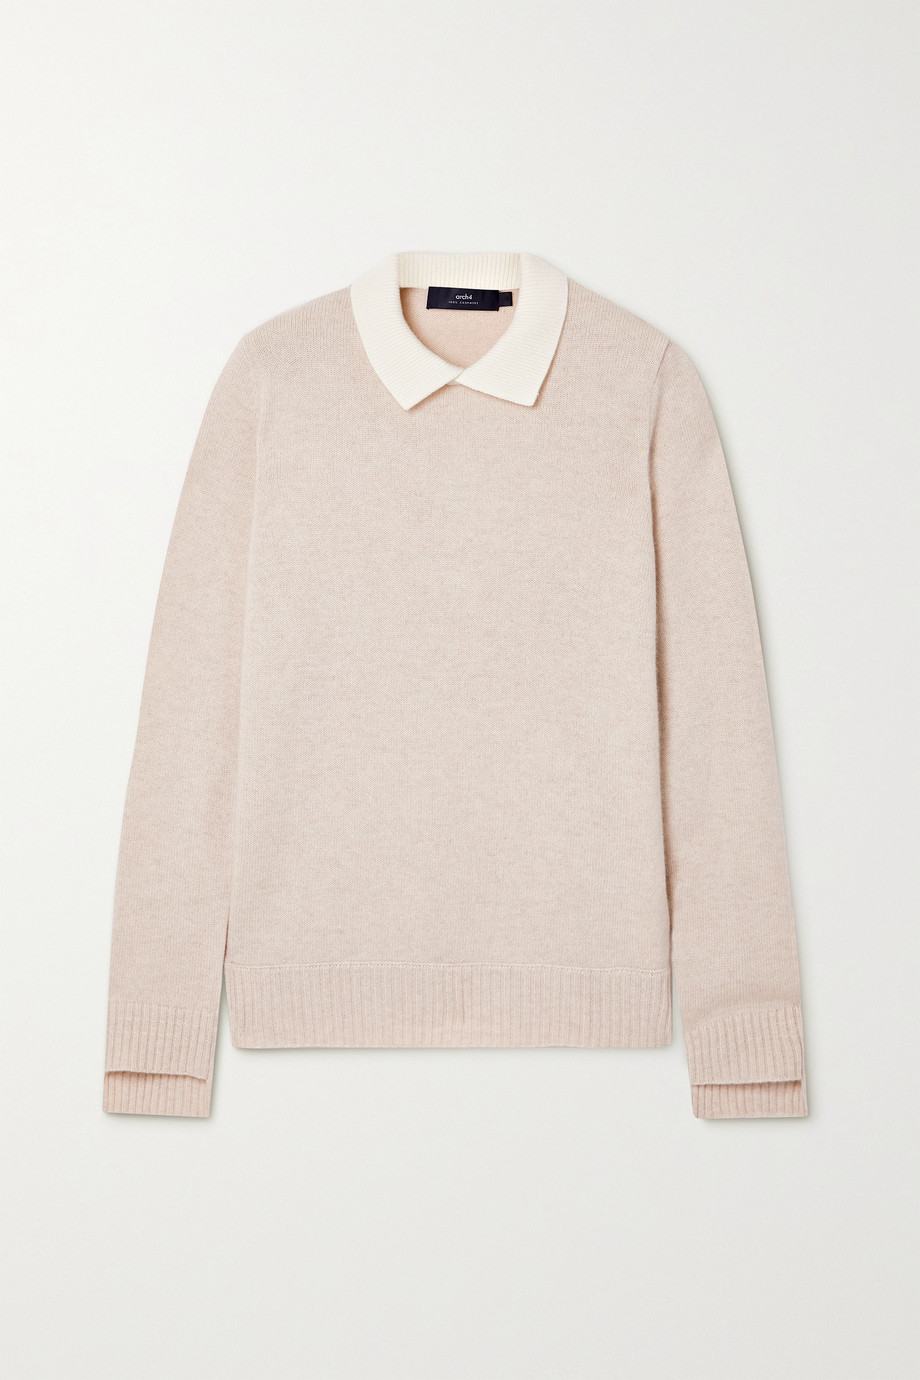 Arch4 Olive cashmere sweater